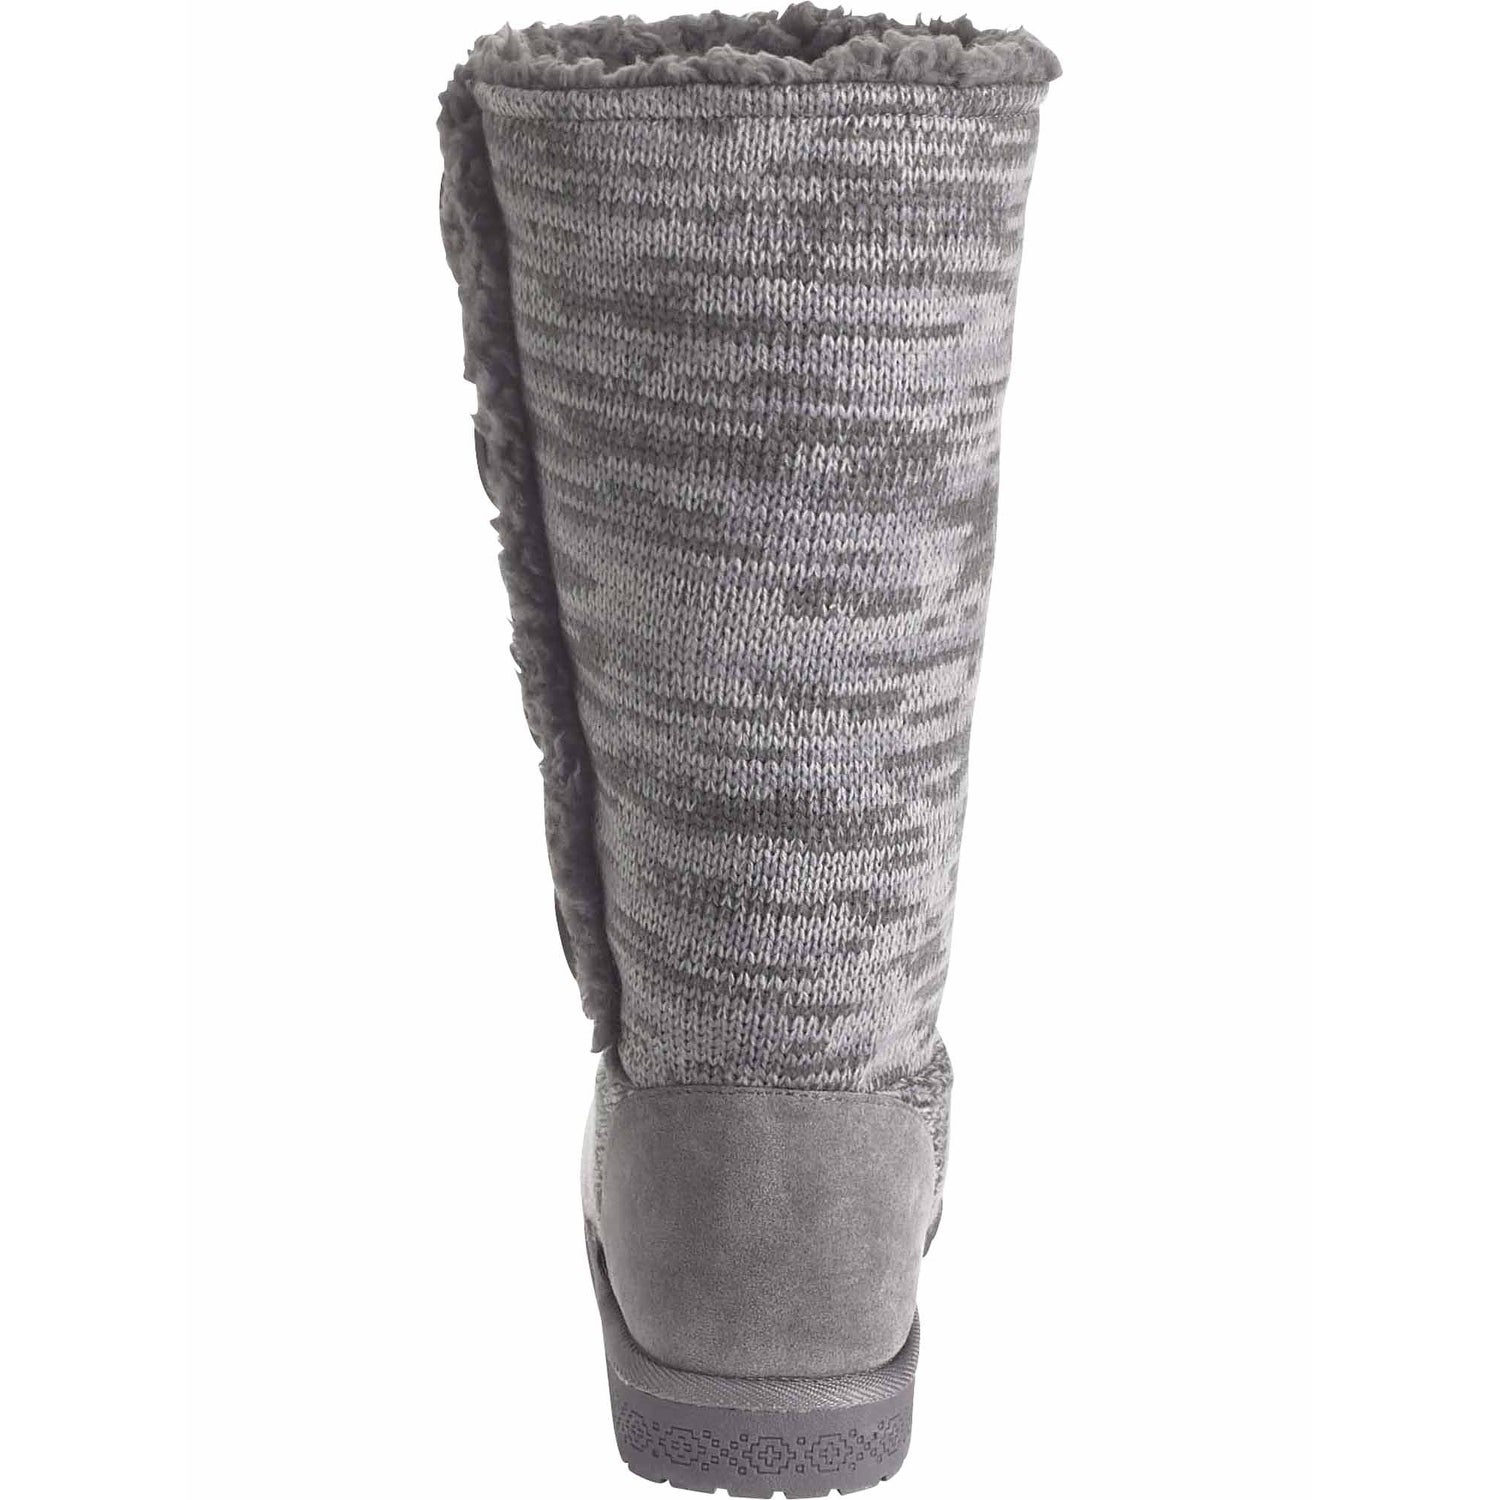 9c71b6fad98f Shop Legendary Whitetails Women s Morning Frost Slipper Boots - Shadow Gray  - Free Shipping On Orders Over  45 - Overstock - 24239355